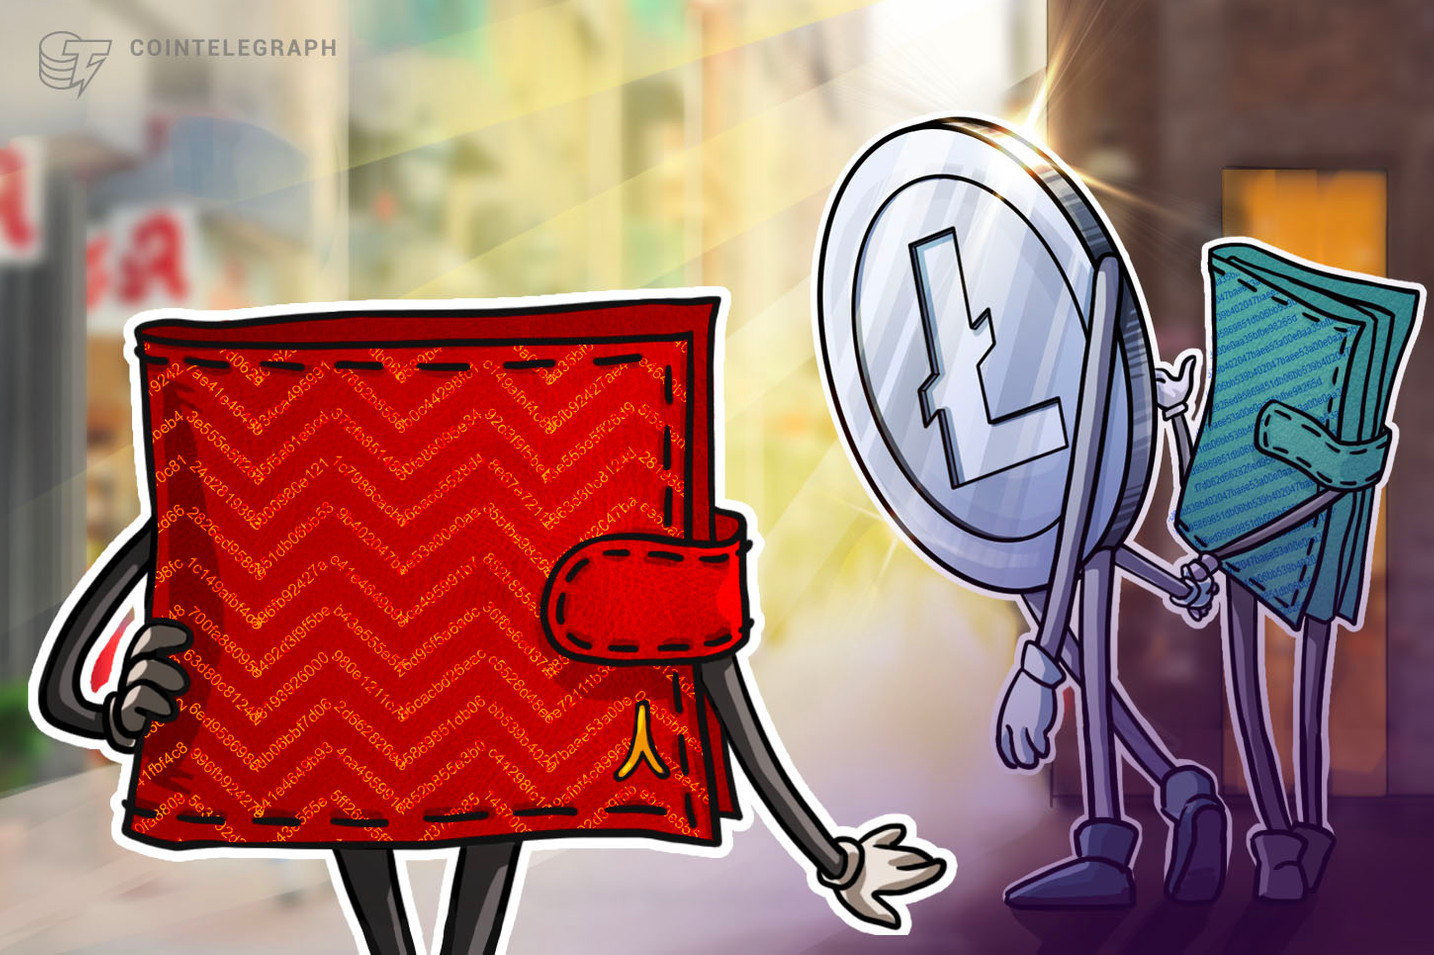 Litecoin Courting TenX and Korbit - Just a Month after LitePay 'Breakup'